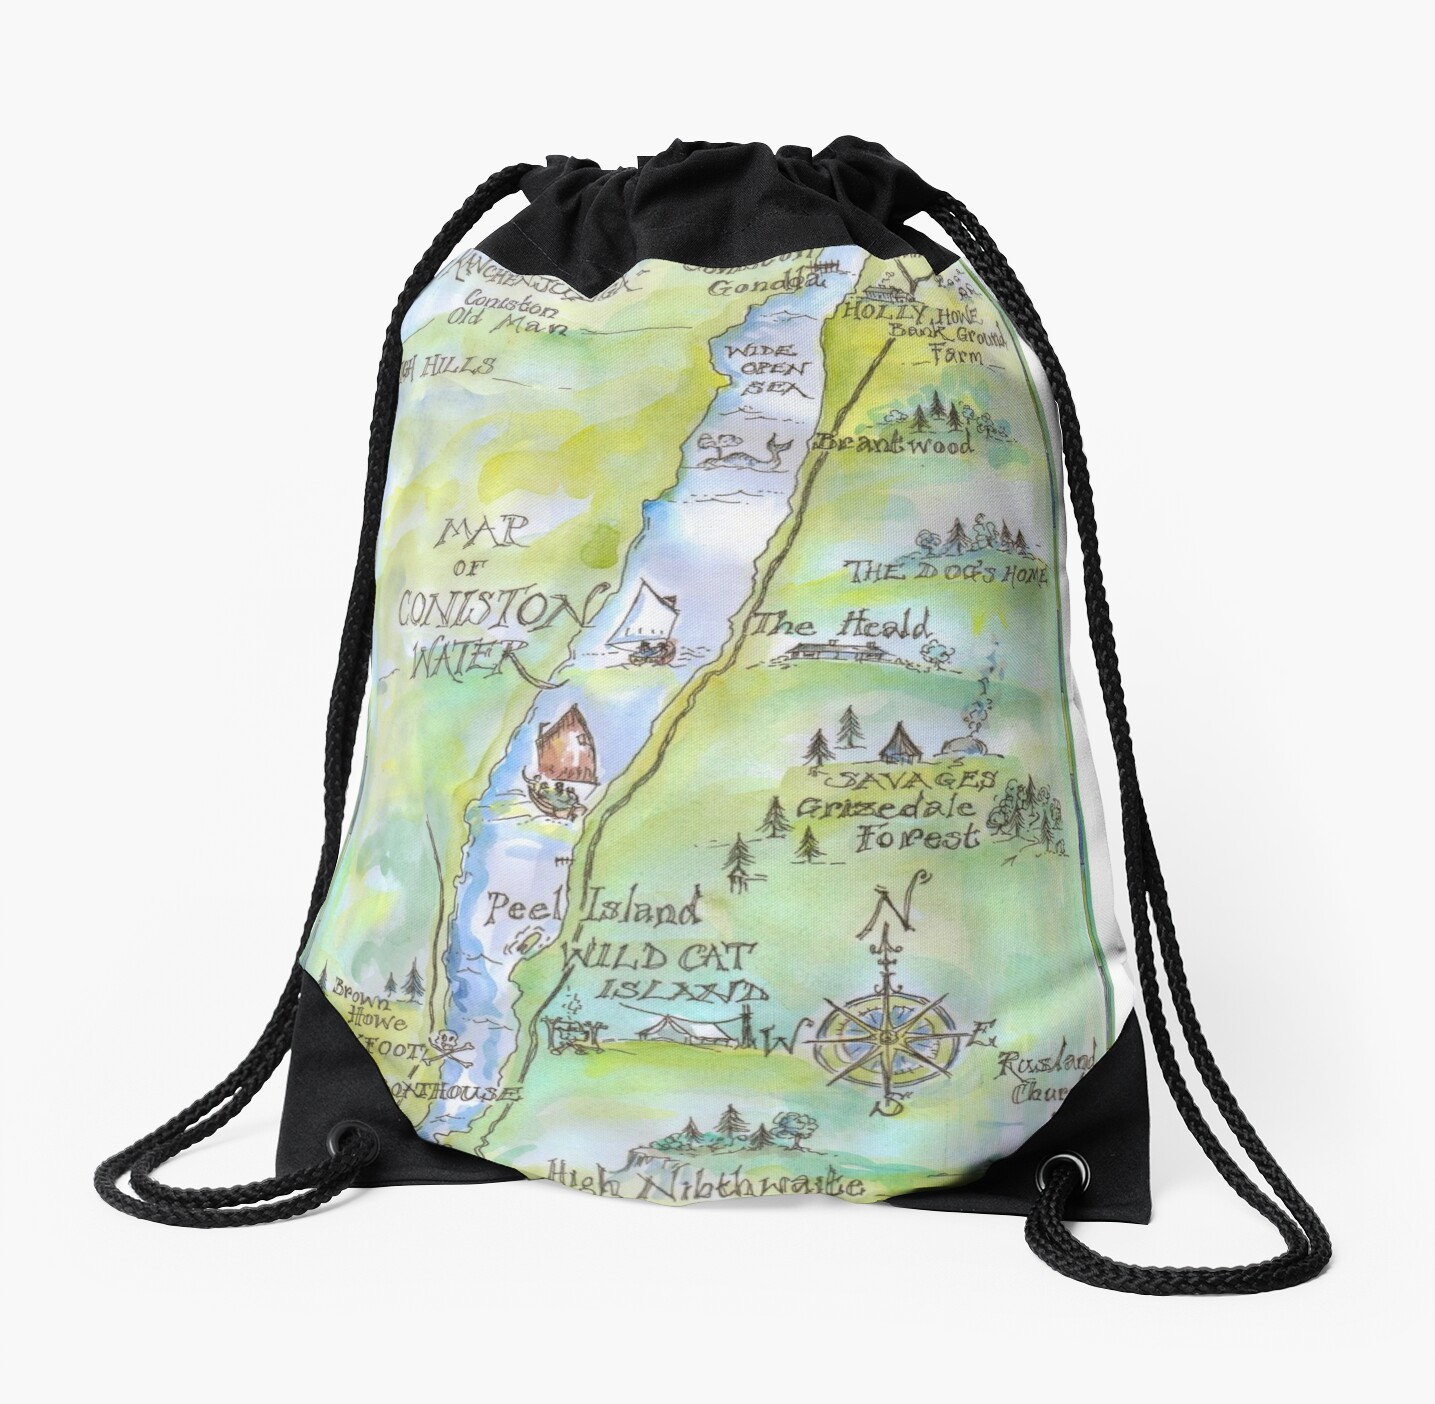 Swallows and Amazons map of Coniston Water by Sophie Neville